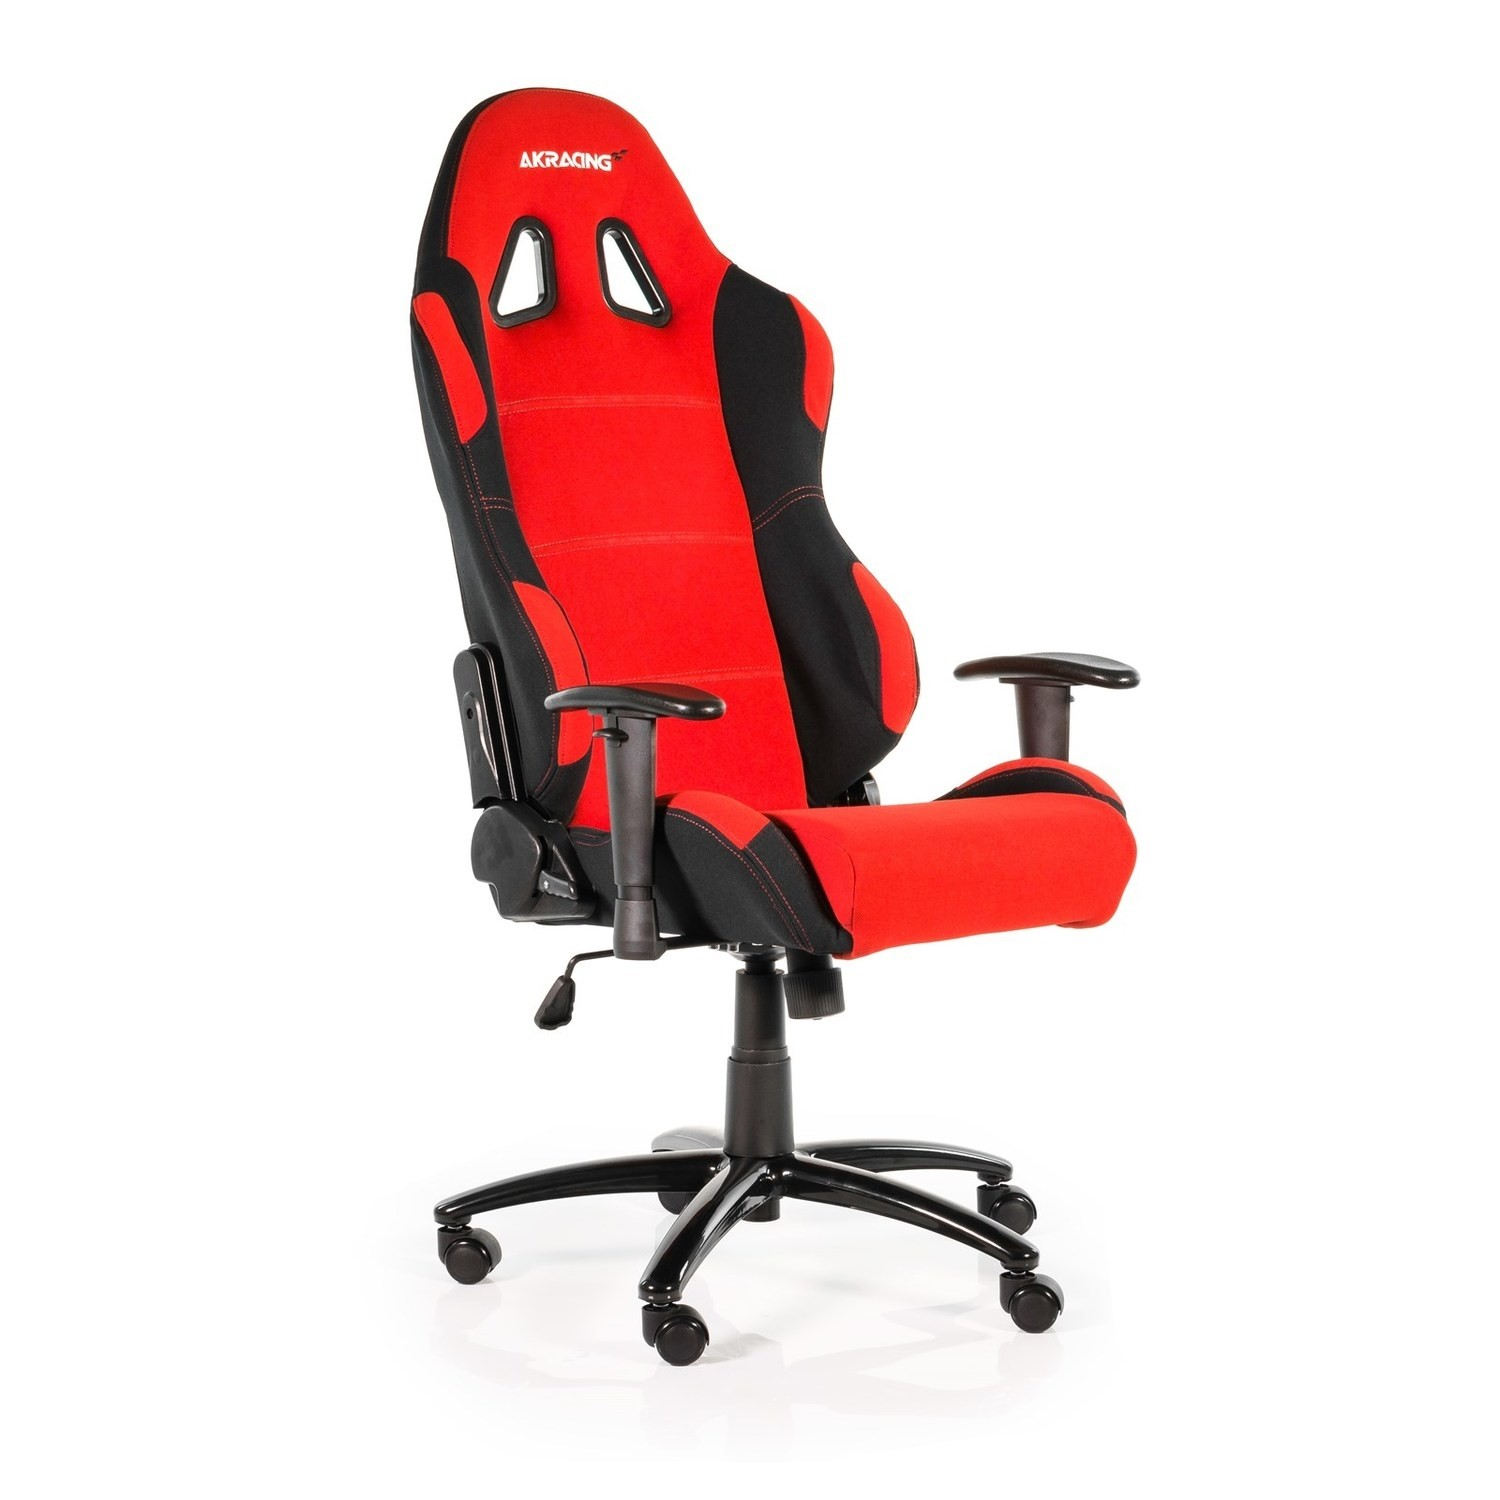 Astonishing Ak Racing Prime K7018 Gaming Chair Black Red Machost Co Dining Chair Design Ideas Machostcouk